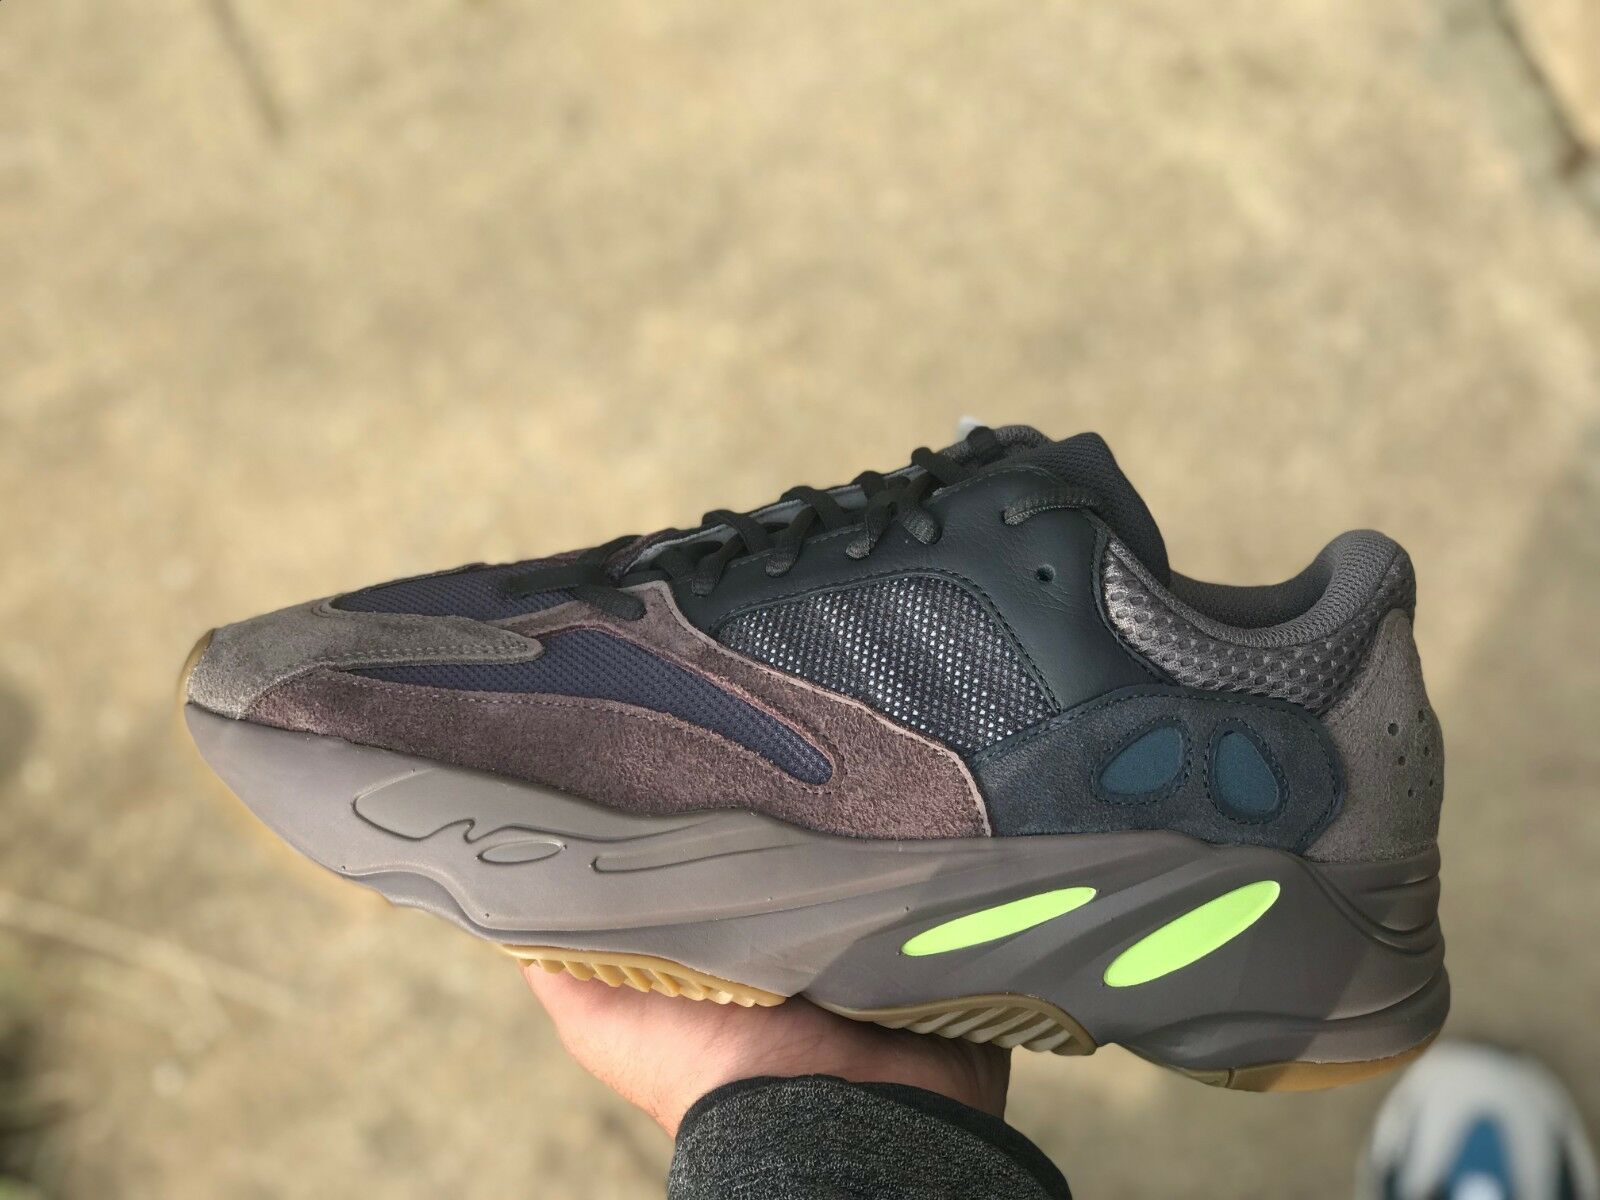 Yeezy Boost 700 Mauve Size US 10.5 Brand New DS Confirmed Order